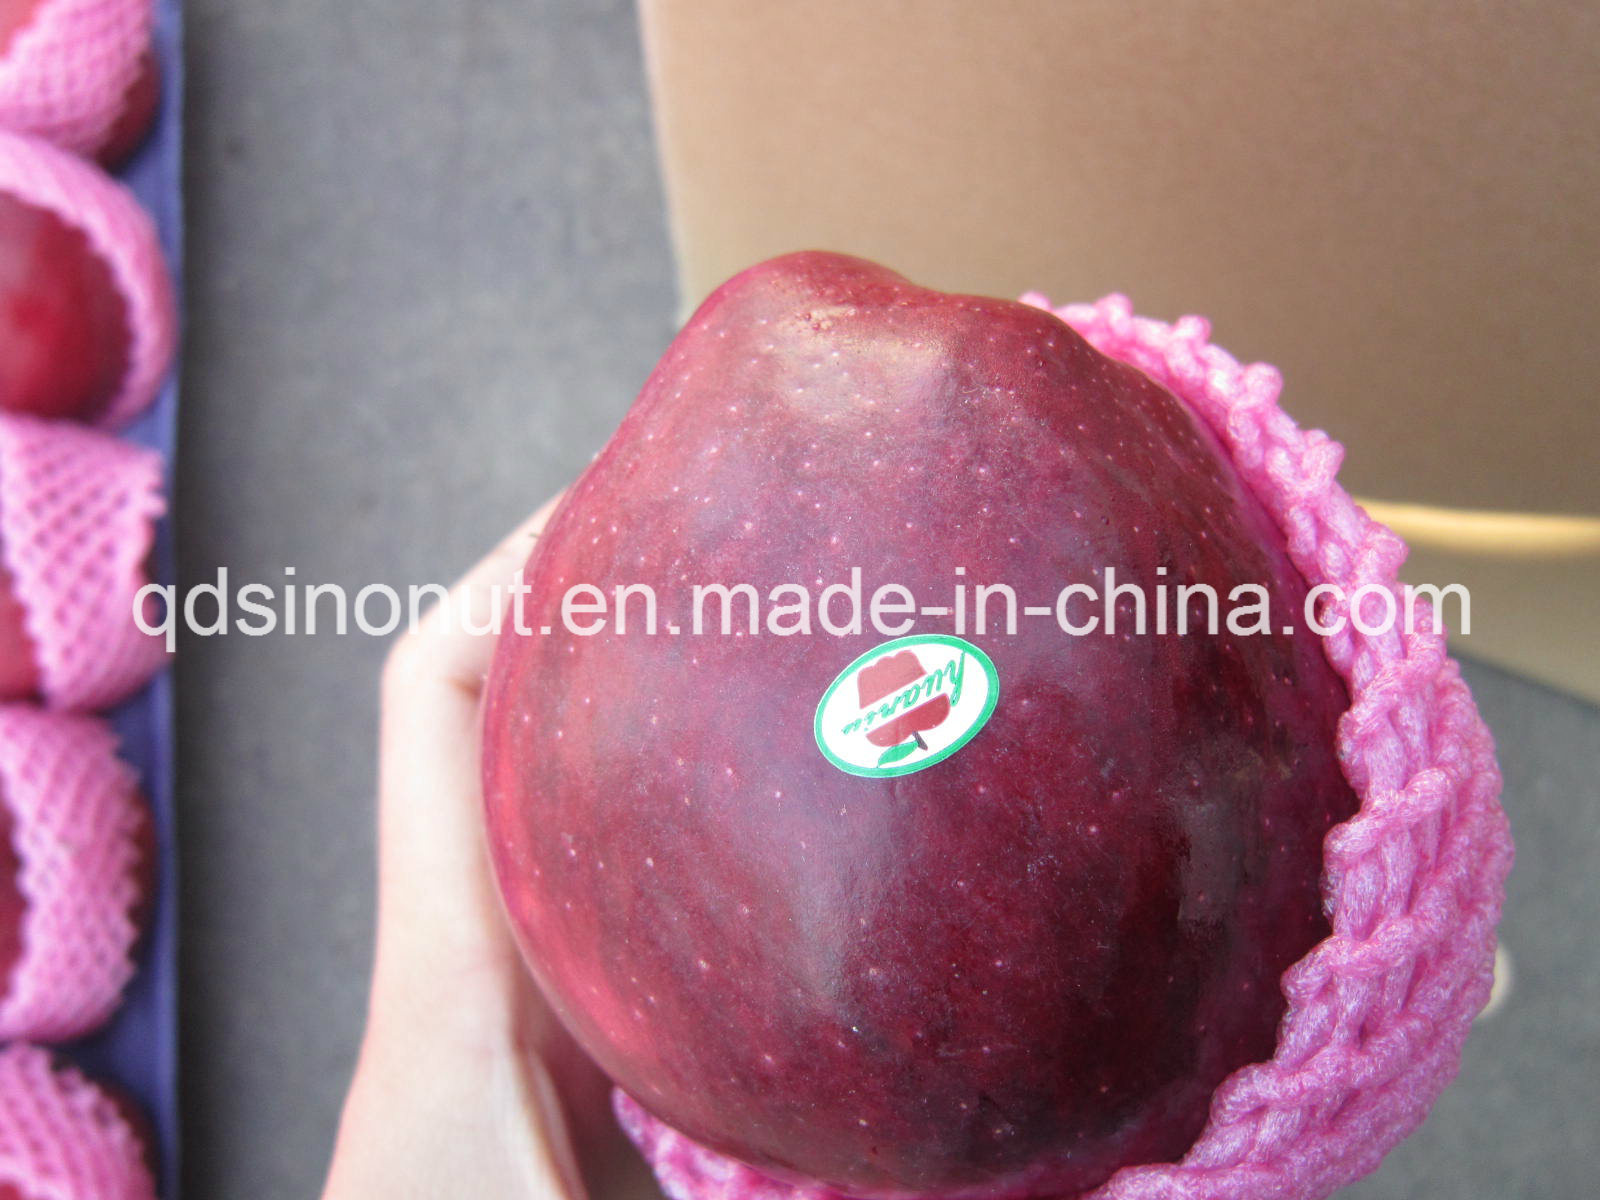 Super Huaniu Apple (good taste)